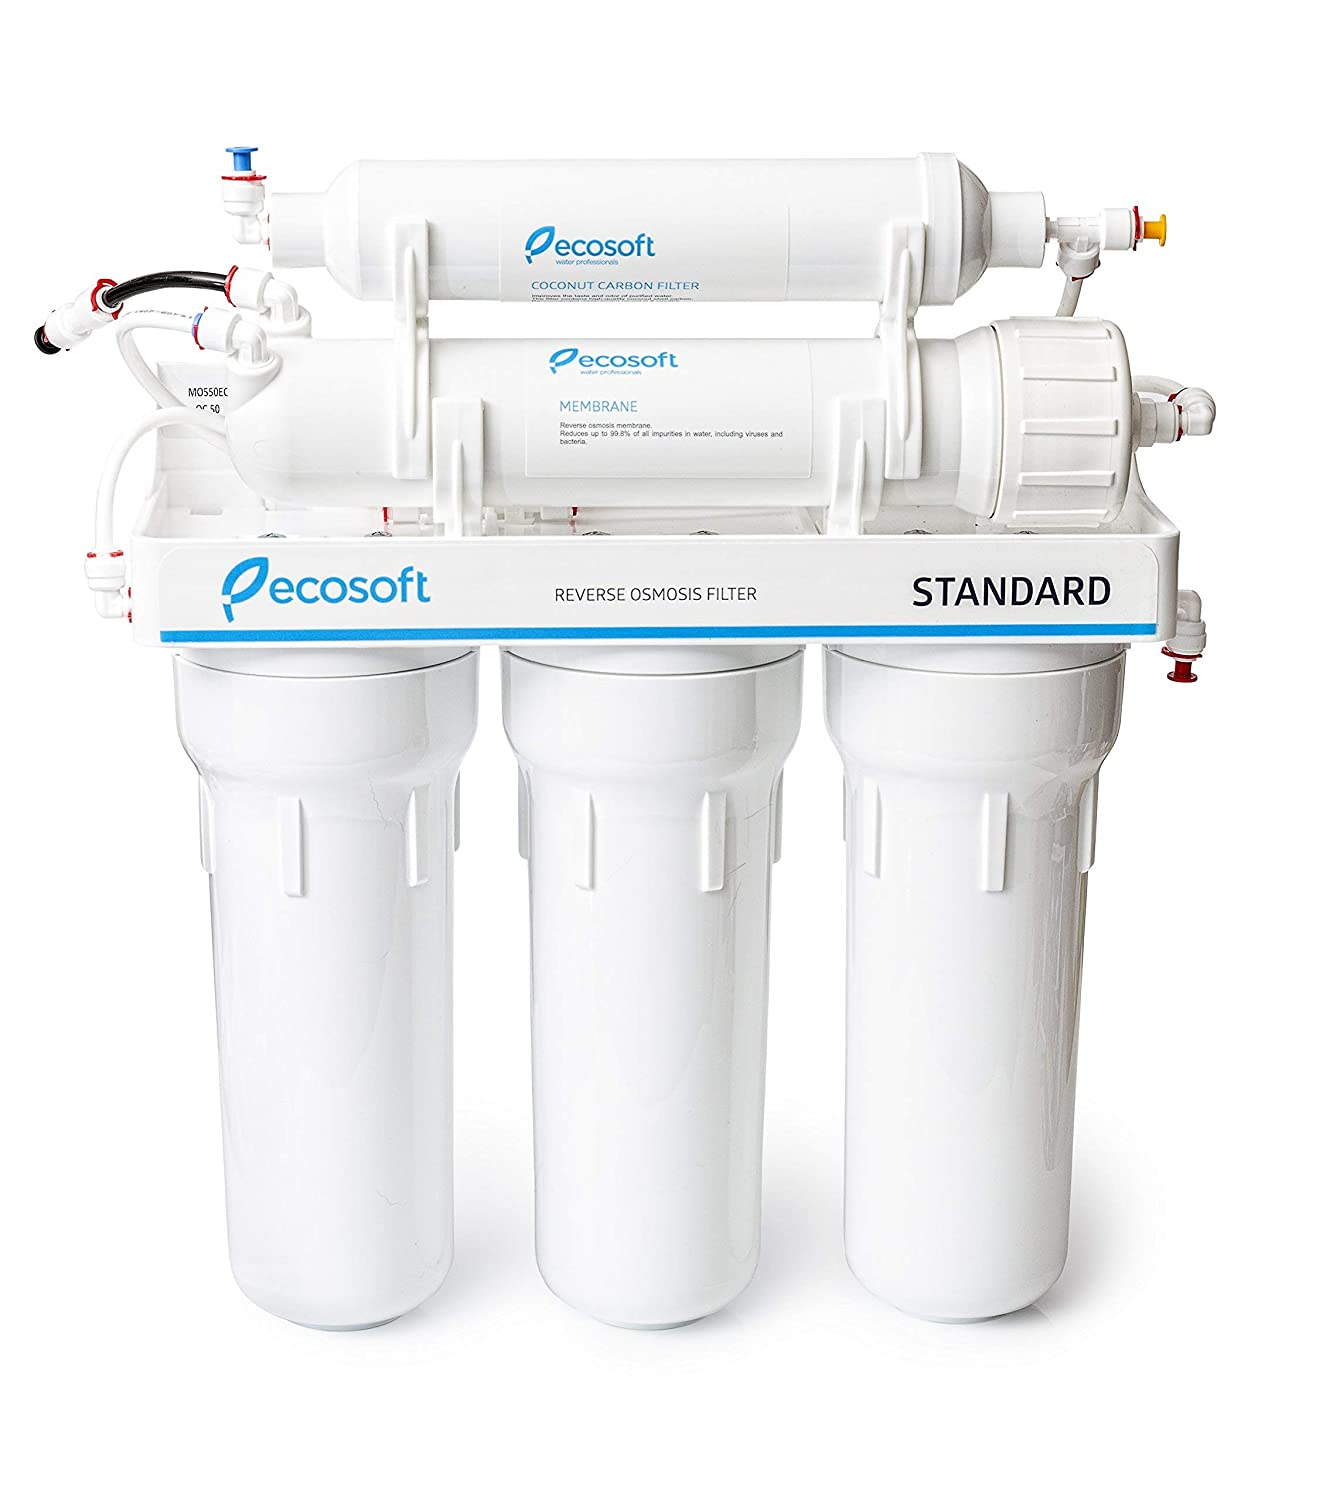 ecosoft 5 stage reverse osmosis water filtration system and under